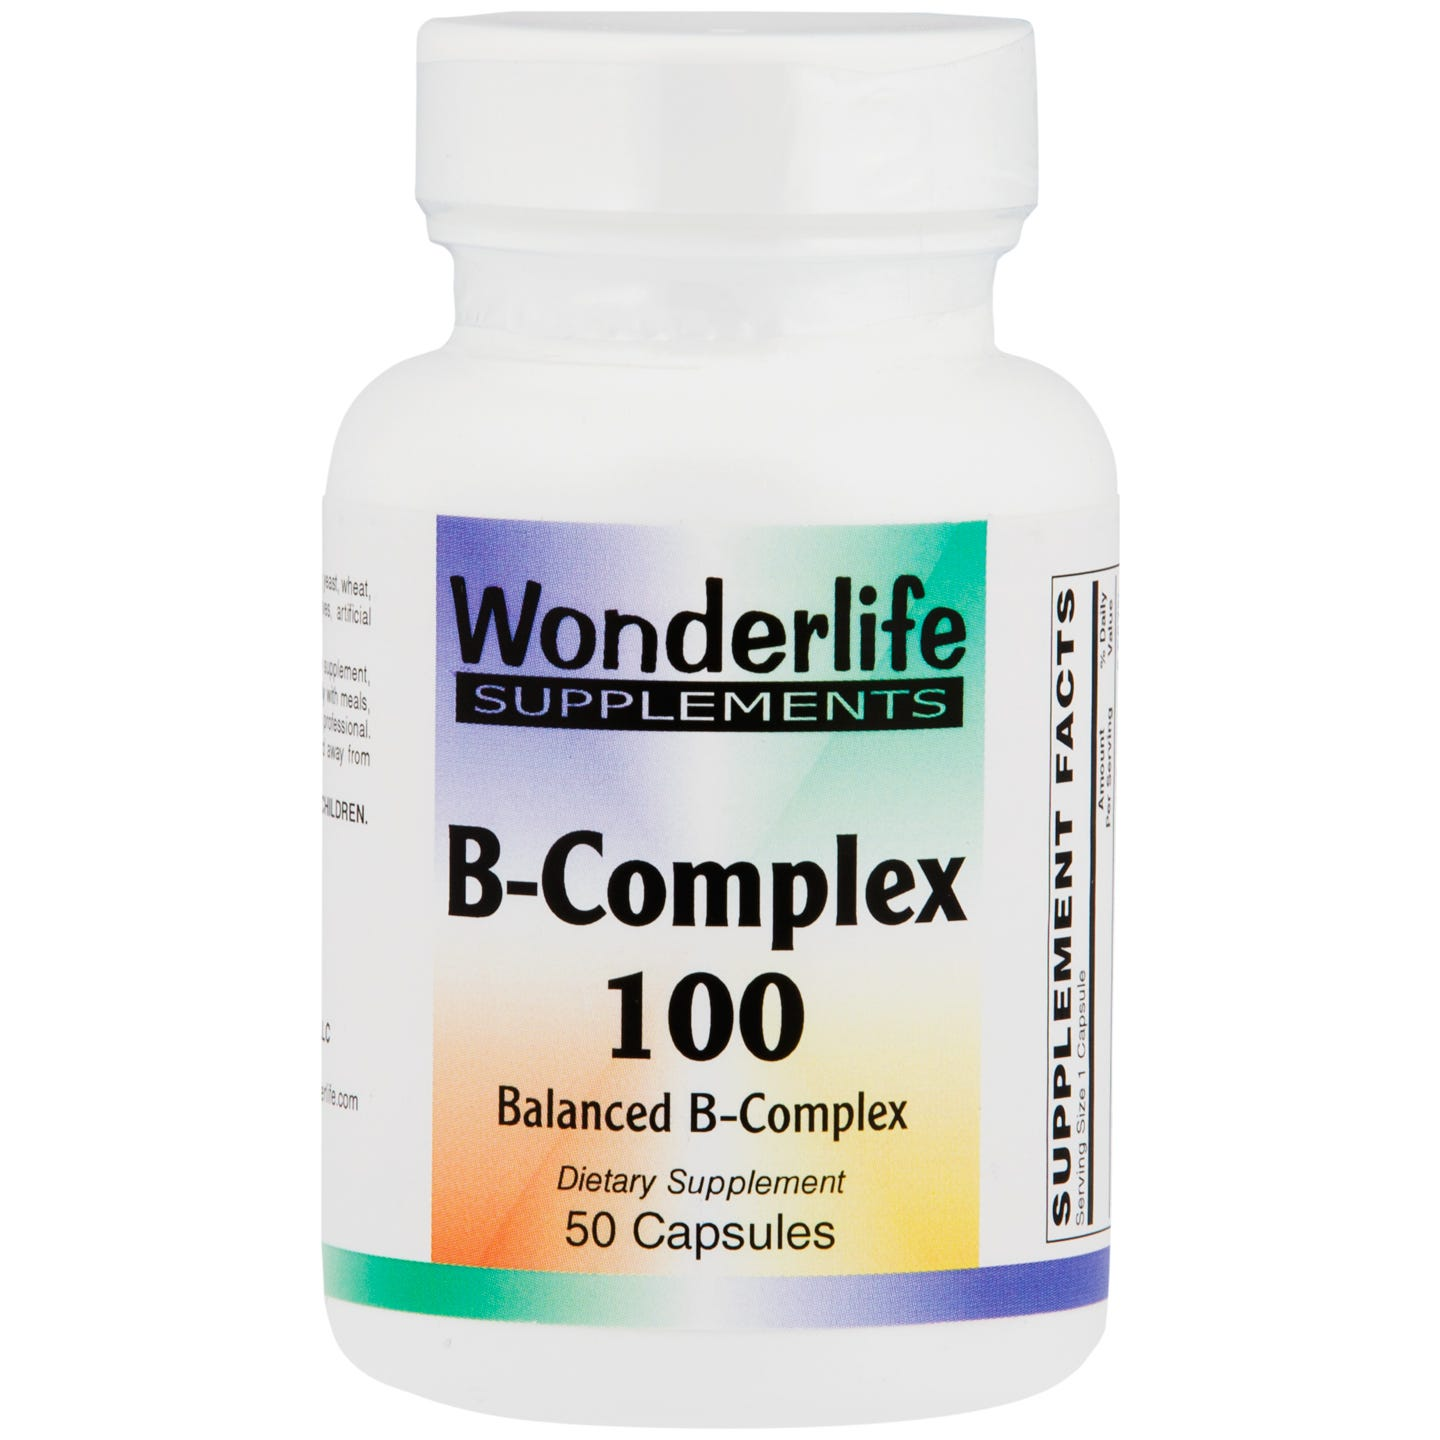 B-Complex 100 (50 Capsules), Wonderlife - Rapid Diet Weight Loss Products Shop